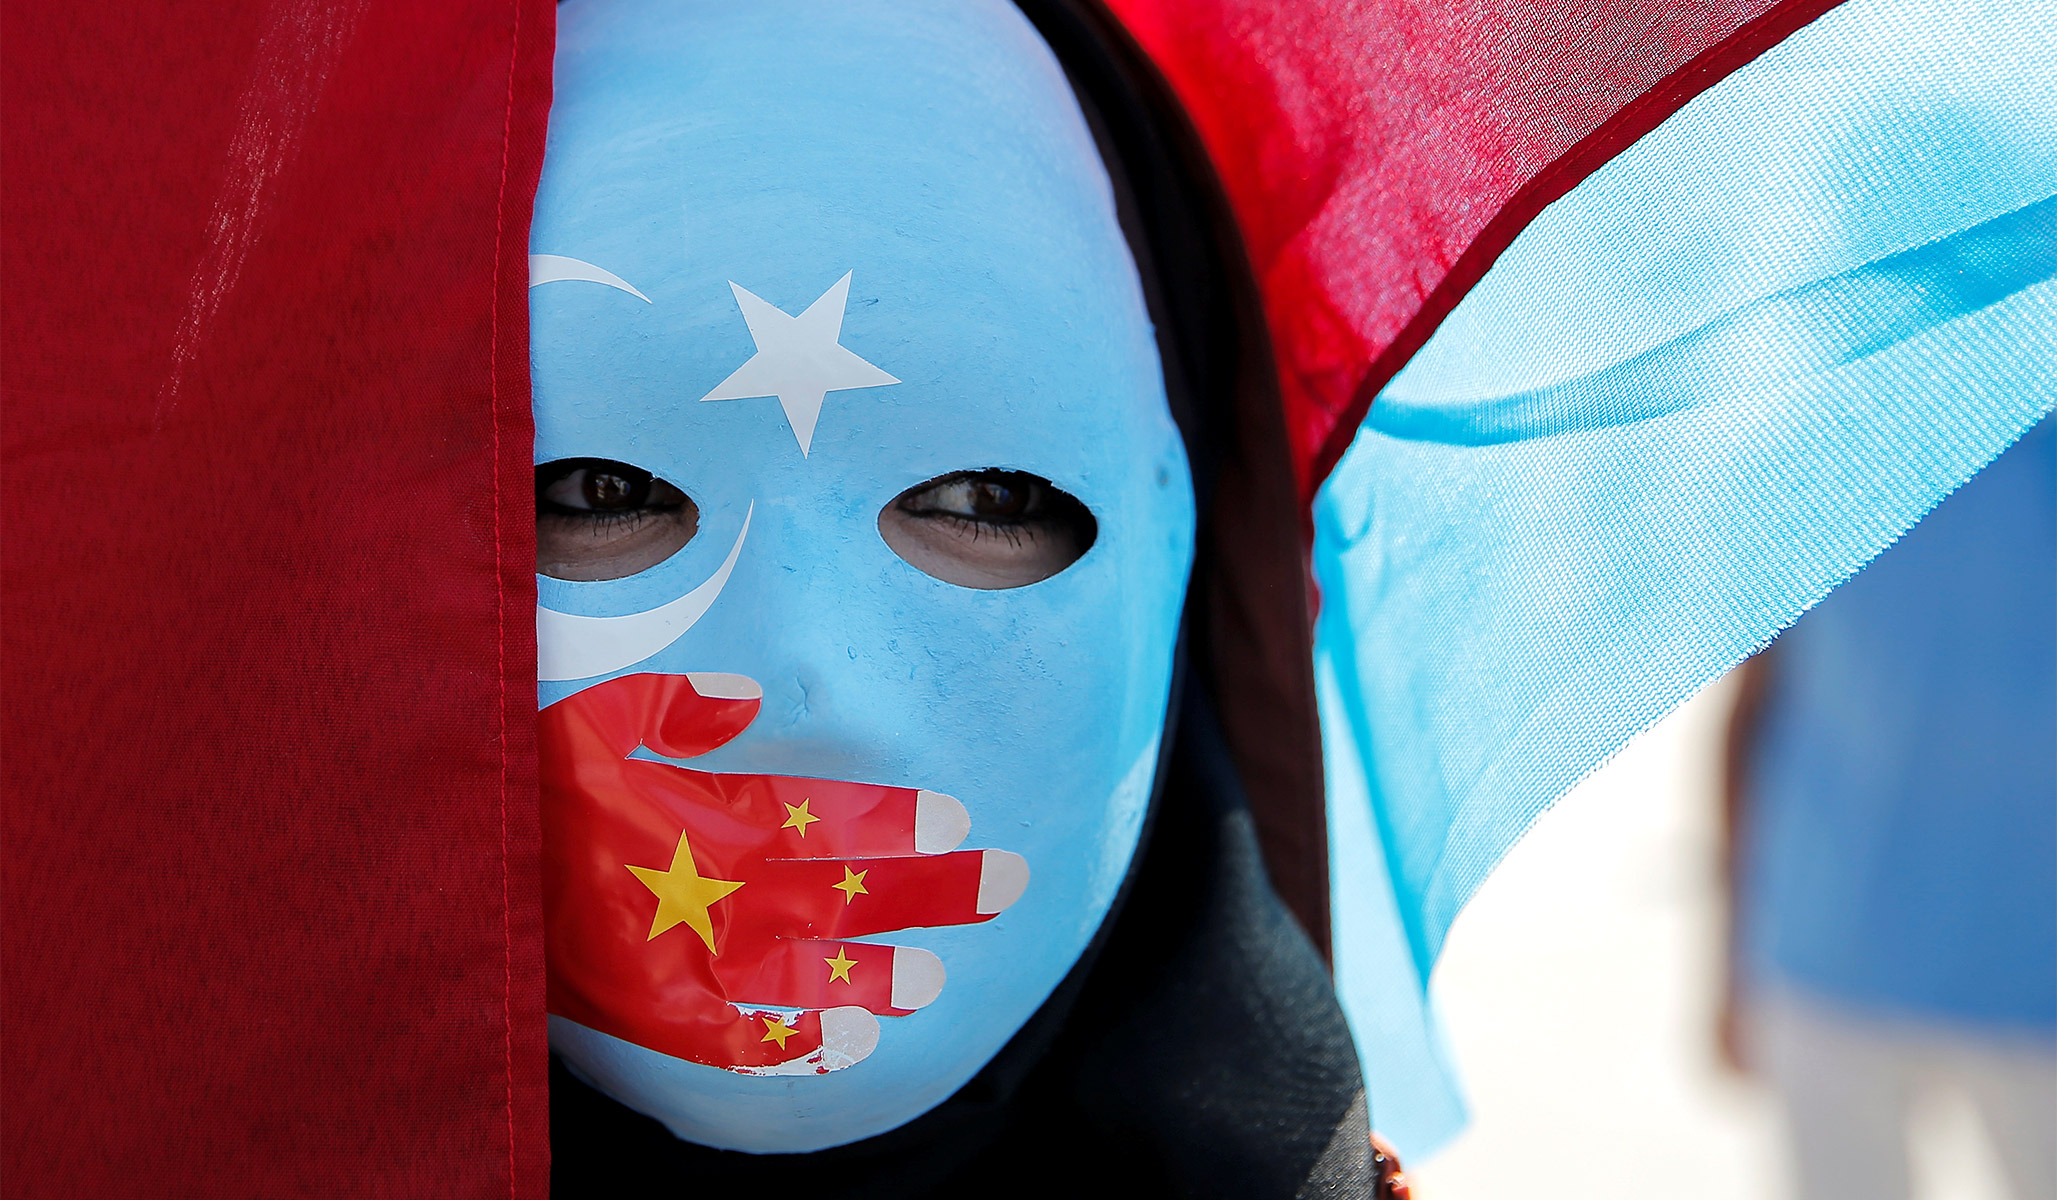 Facing the Uyghur question, &c.